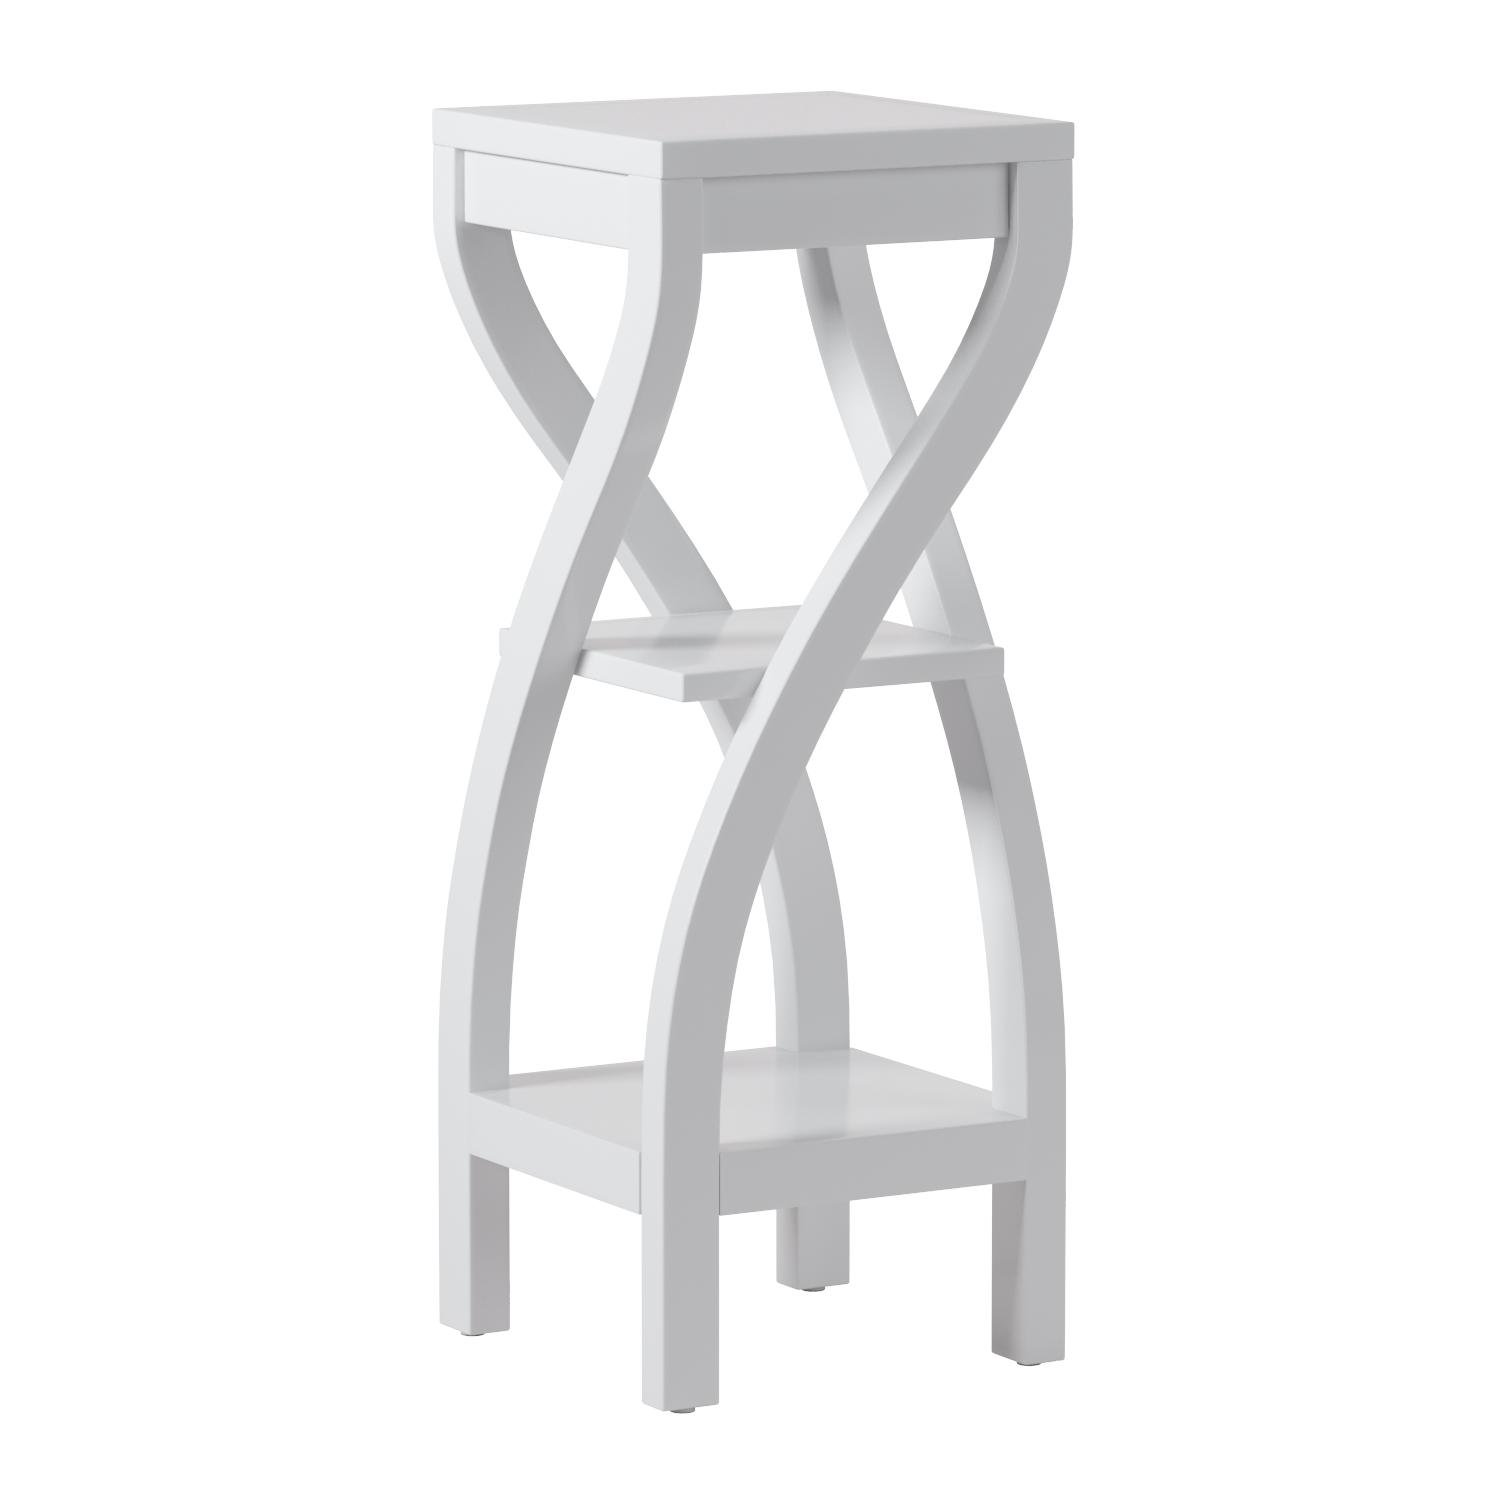 Monarch Specialties I 2479 White Accent Table, 32''